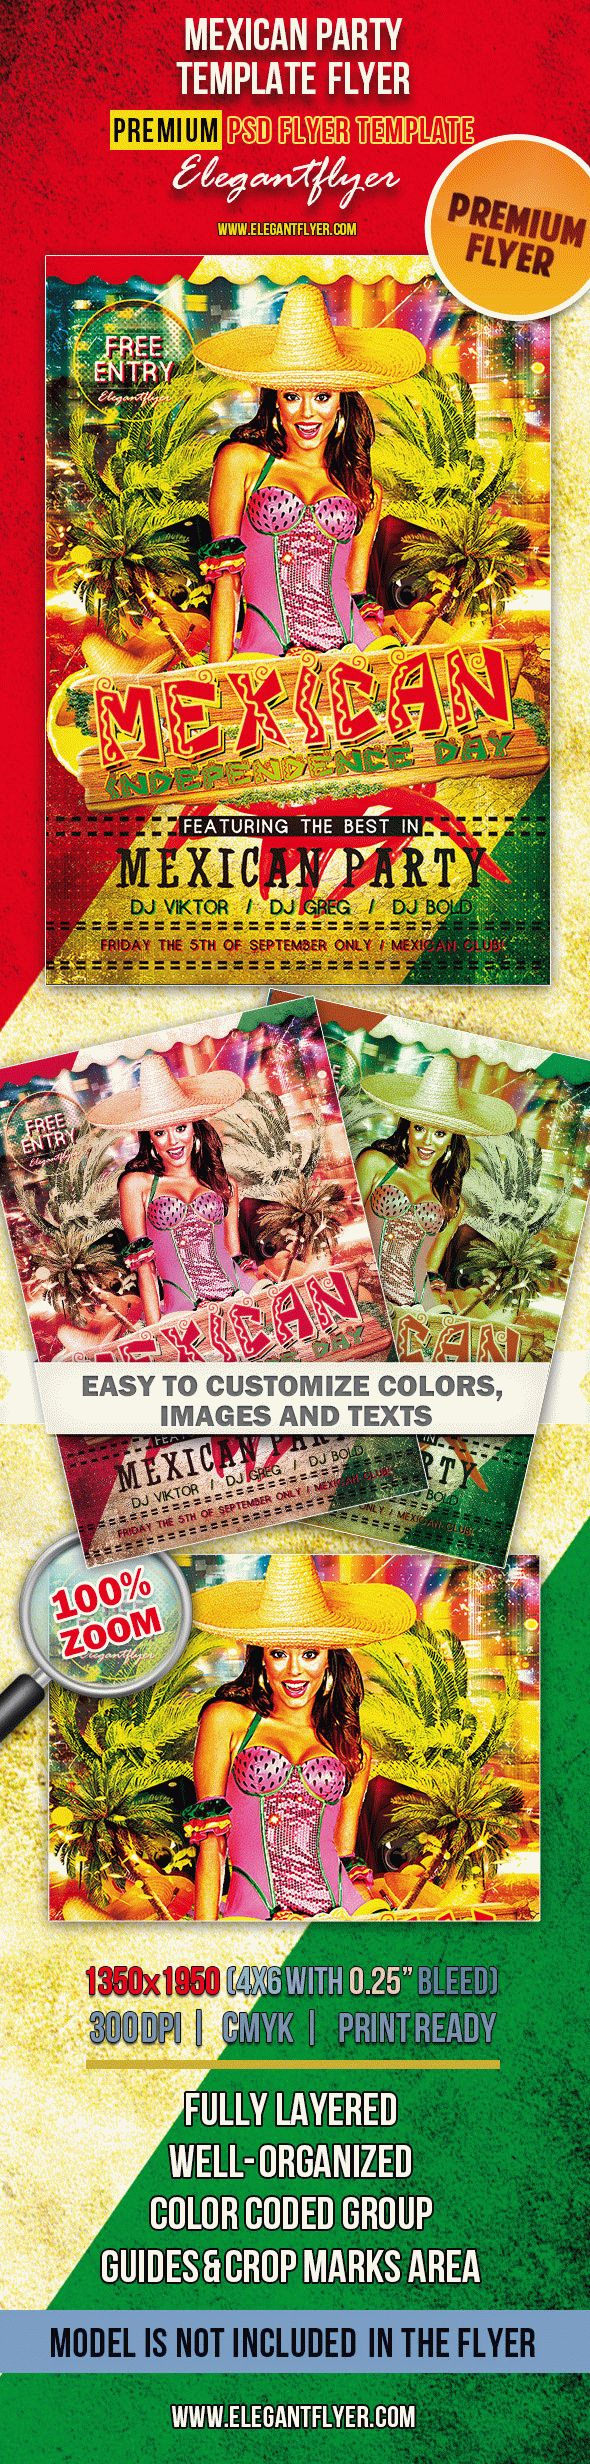 Mexican Party – Premium Club flyer PSD Template